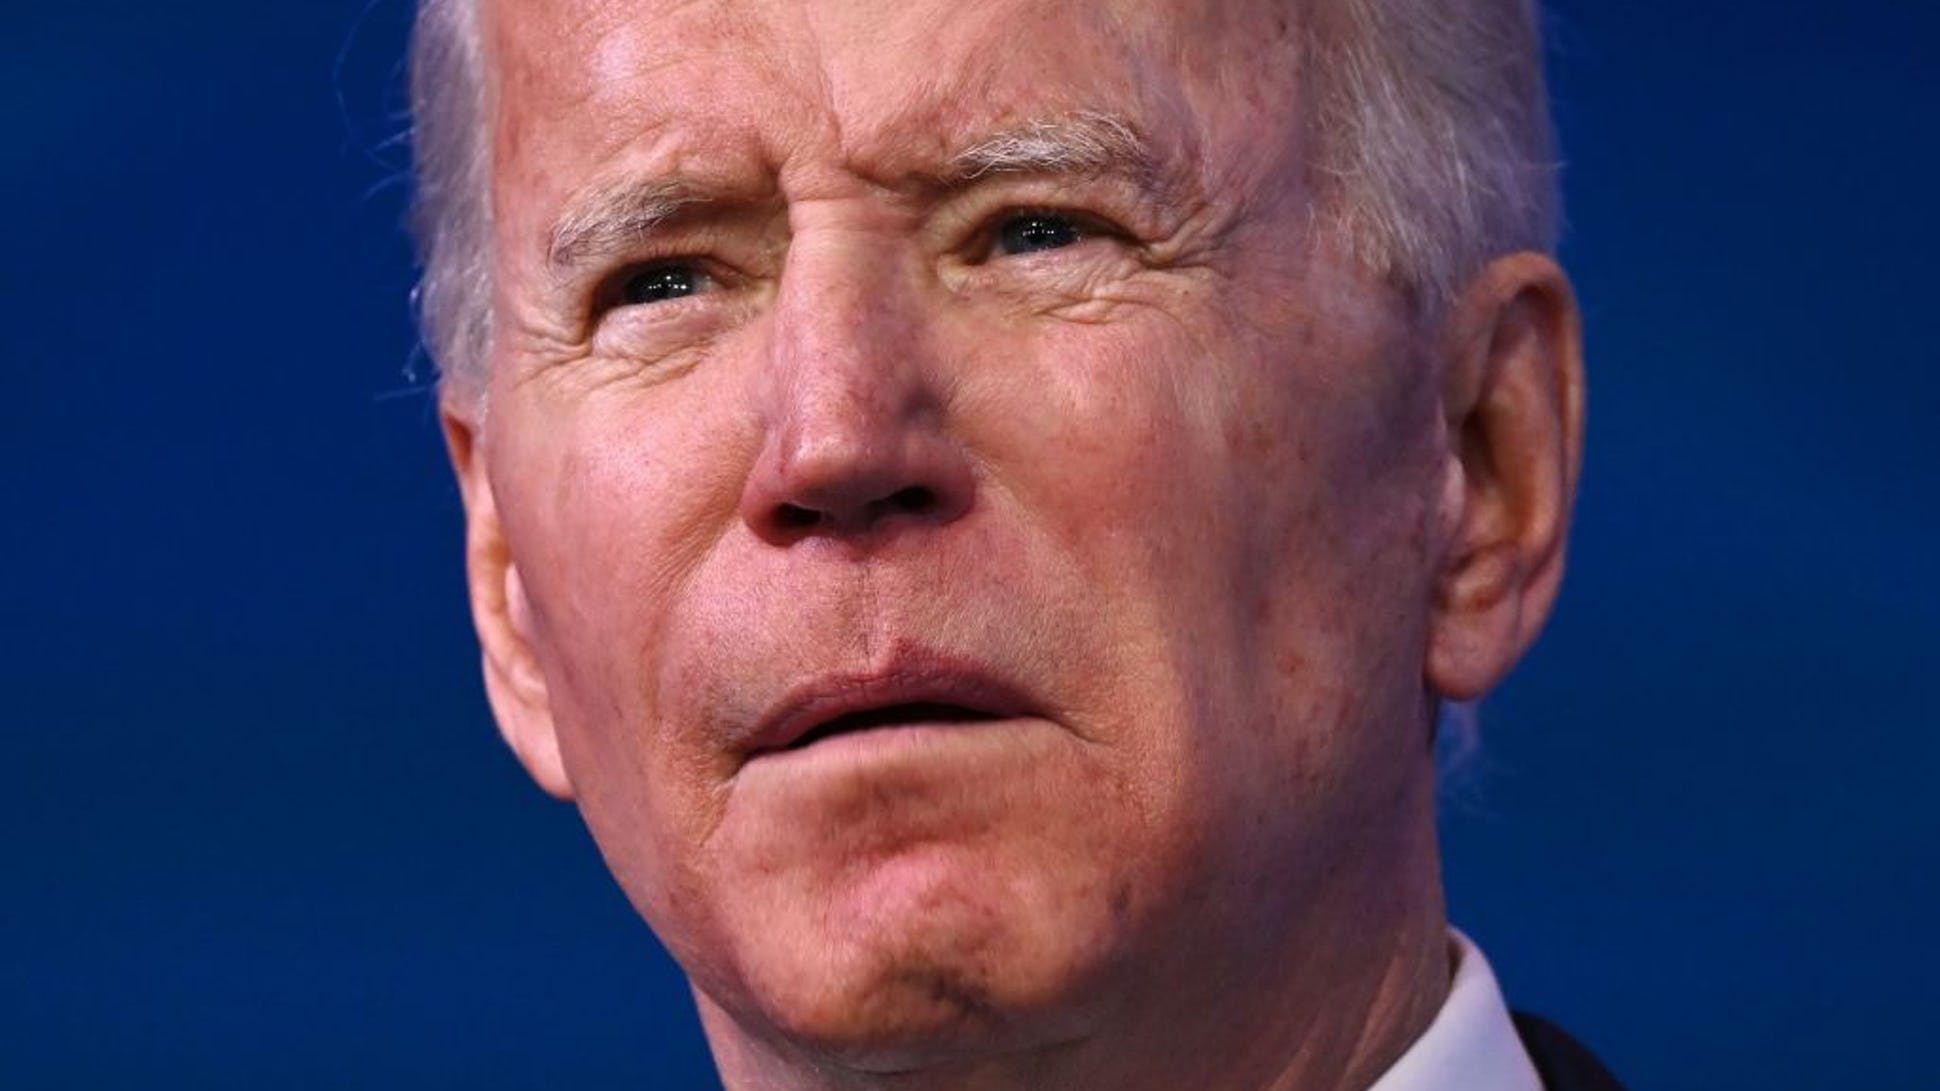 Biden: 'Everyone Knows I Love Kids Better Than People'